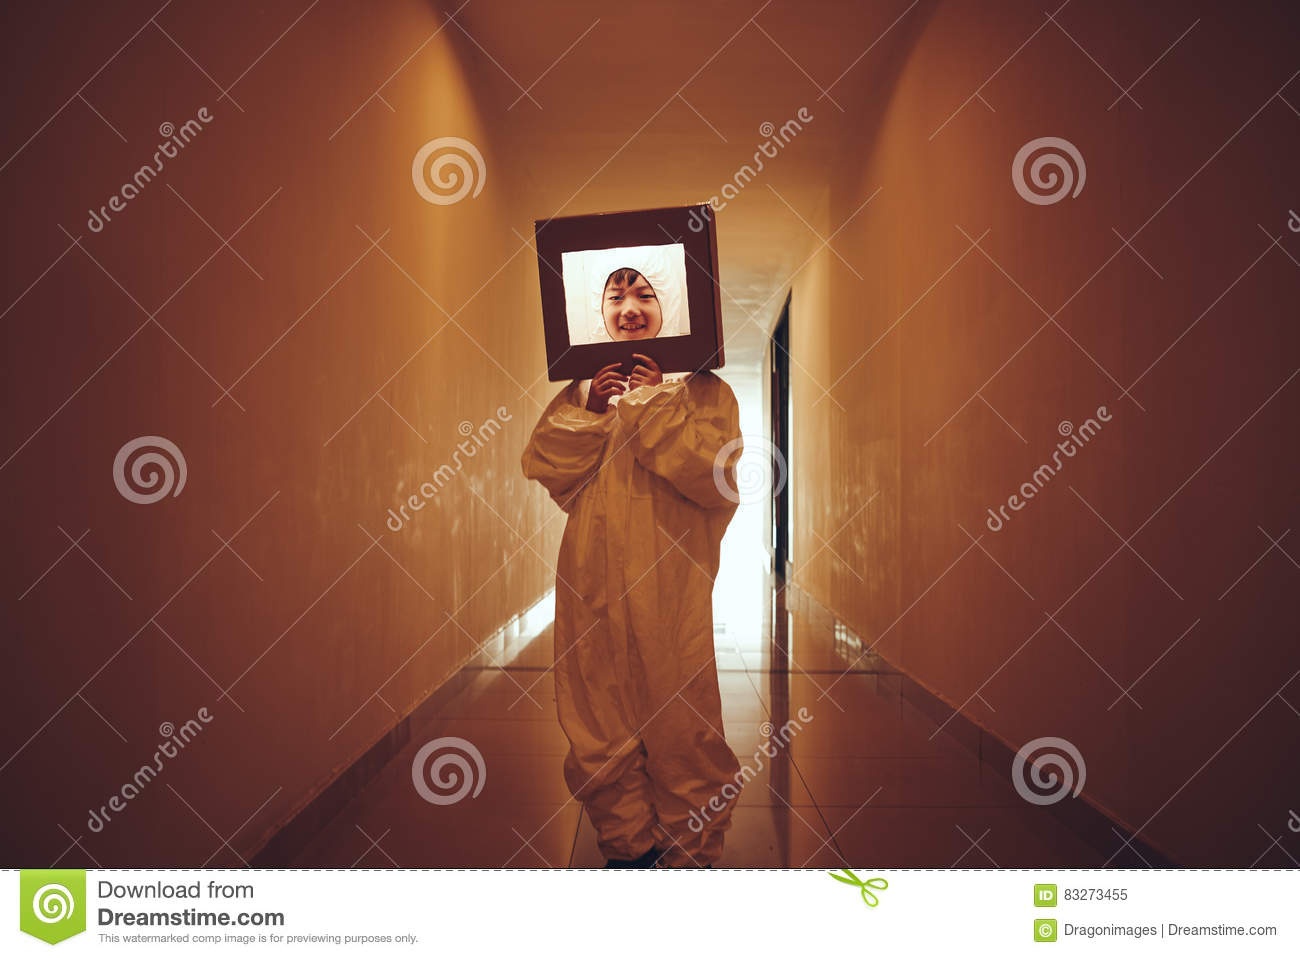 Boy in space suite stock image  Image of halloween, costume